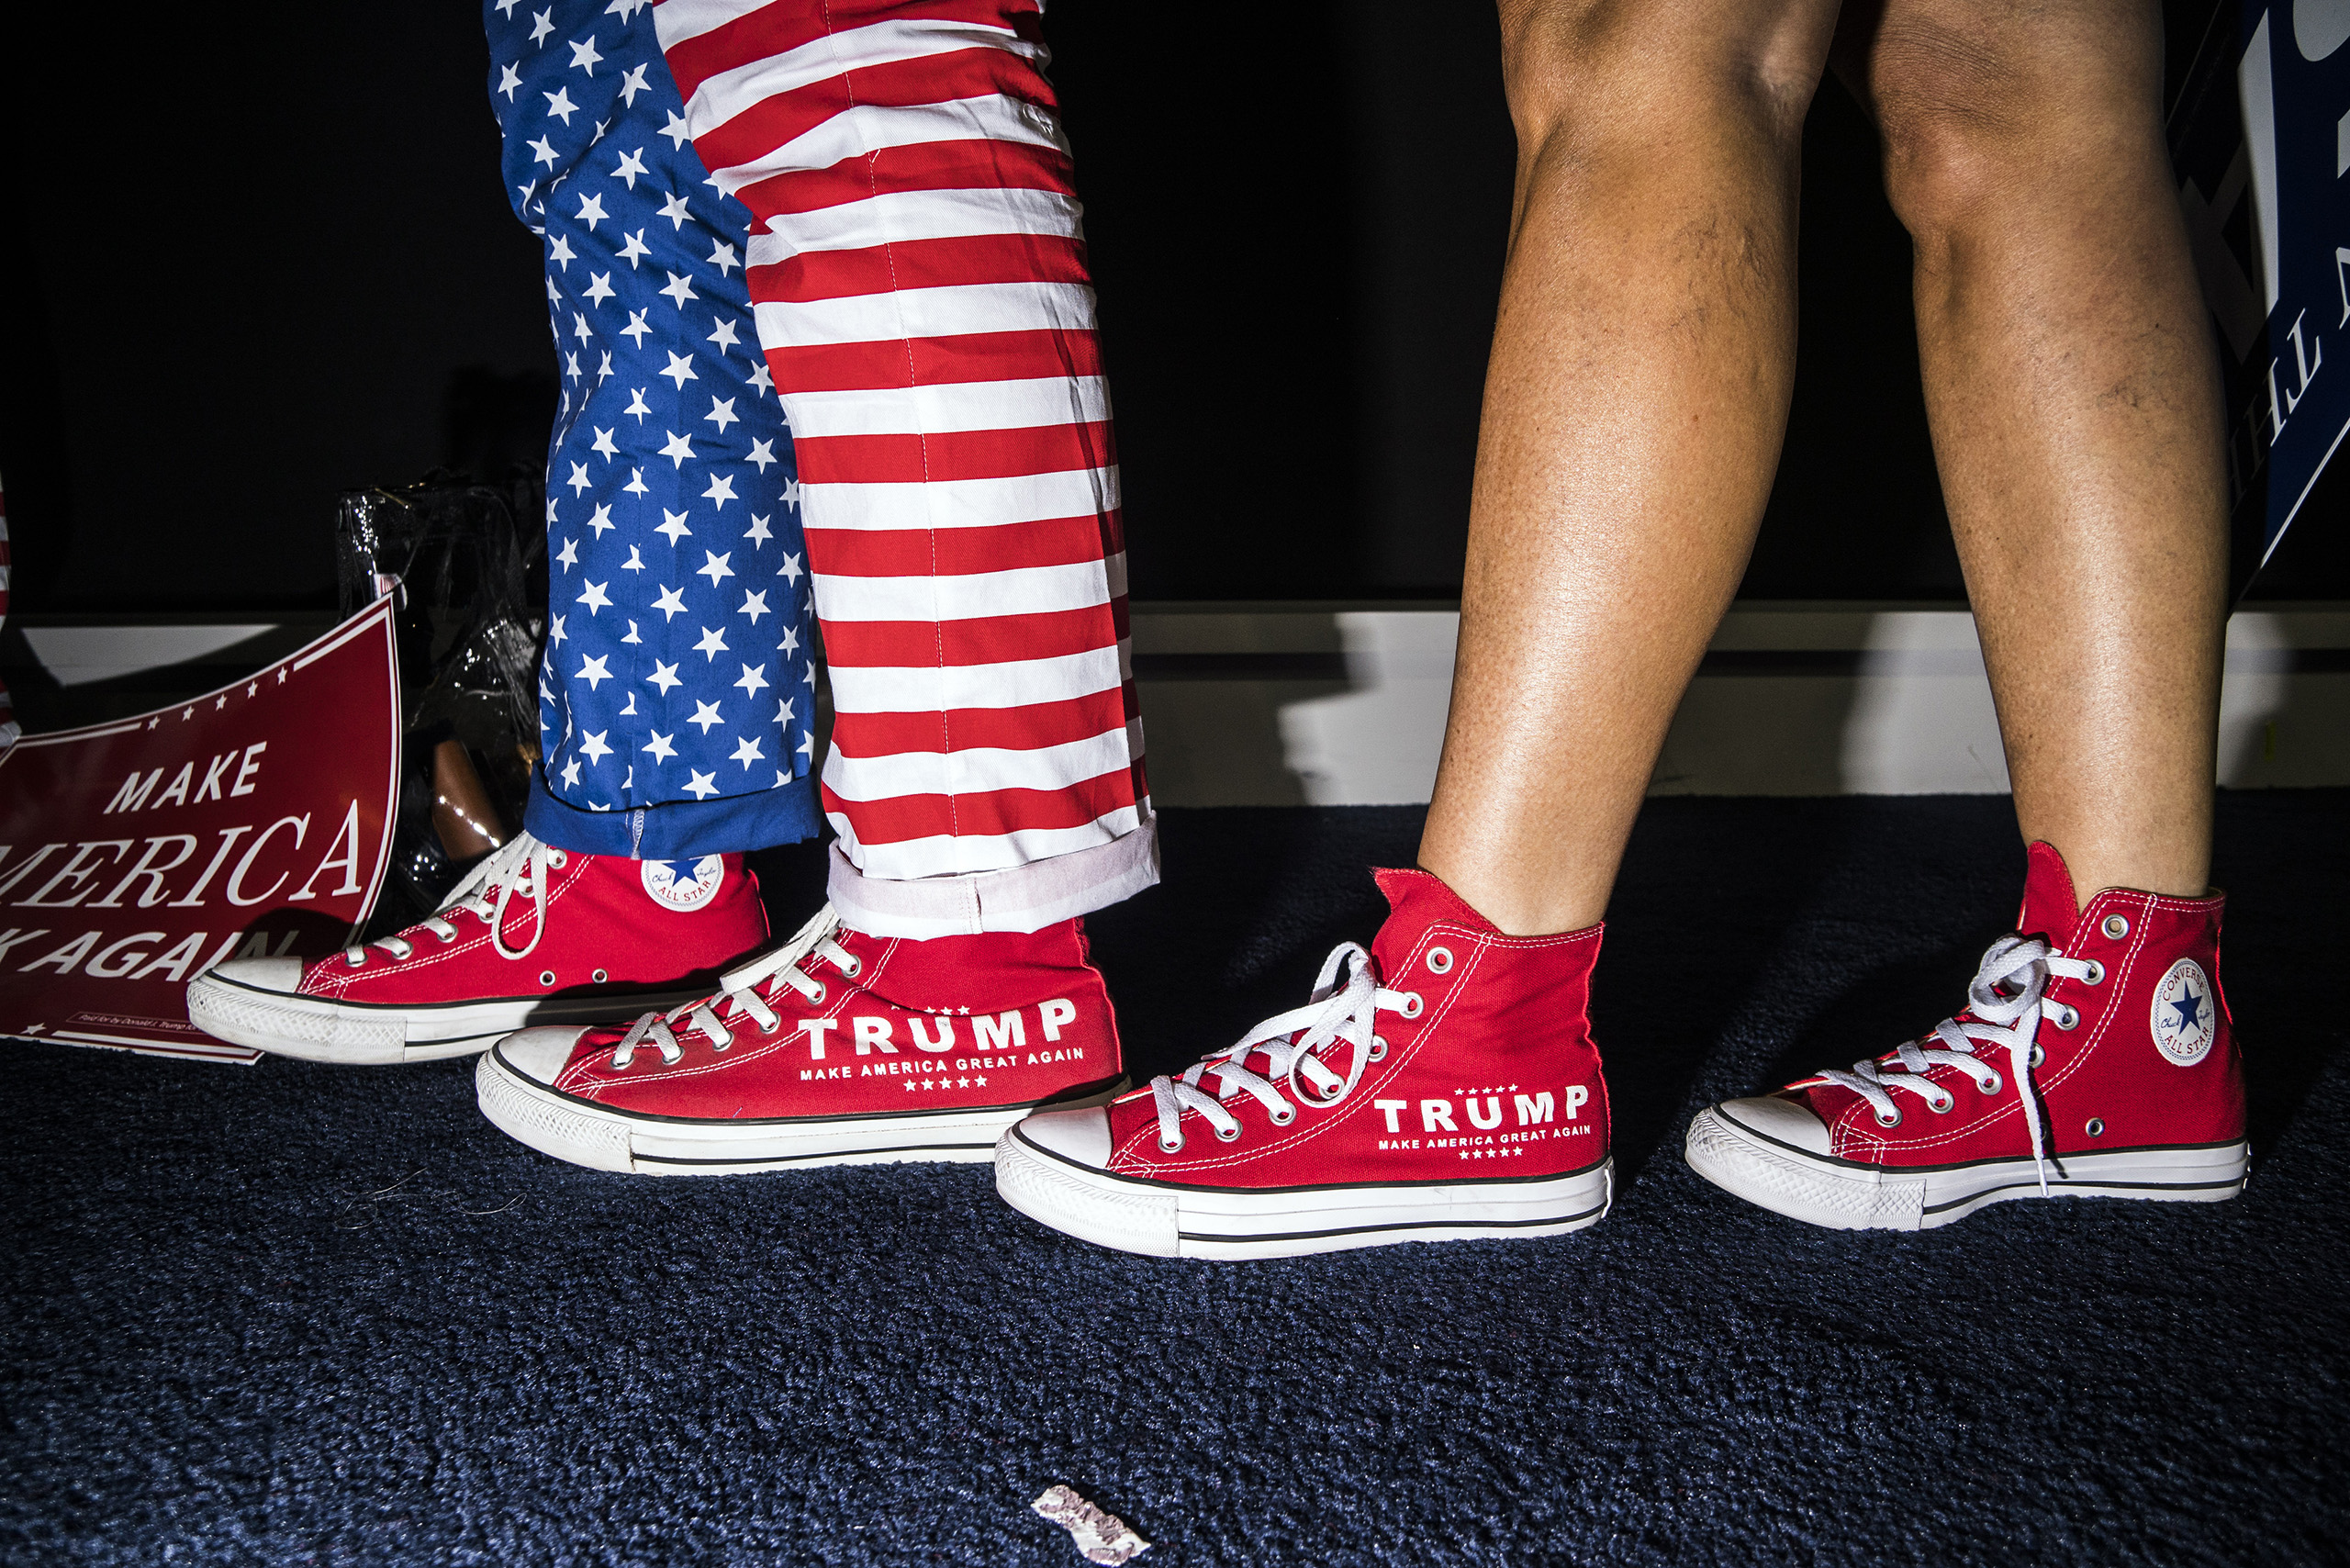 Patriotic apparel at the Republican National Convention on July 19, 2016, at the Quicken Loans Arena in Cleveland, Ohio.